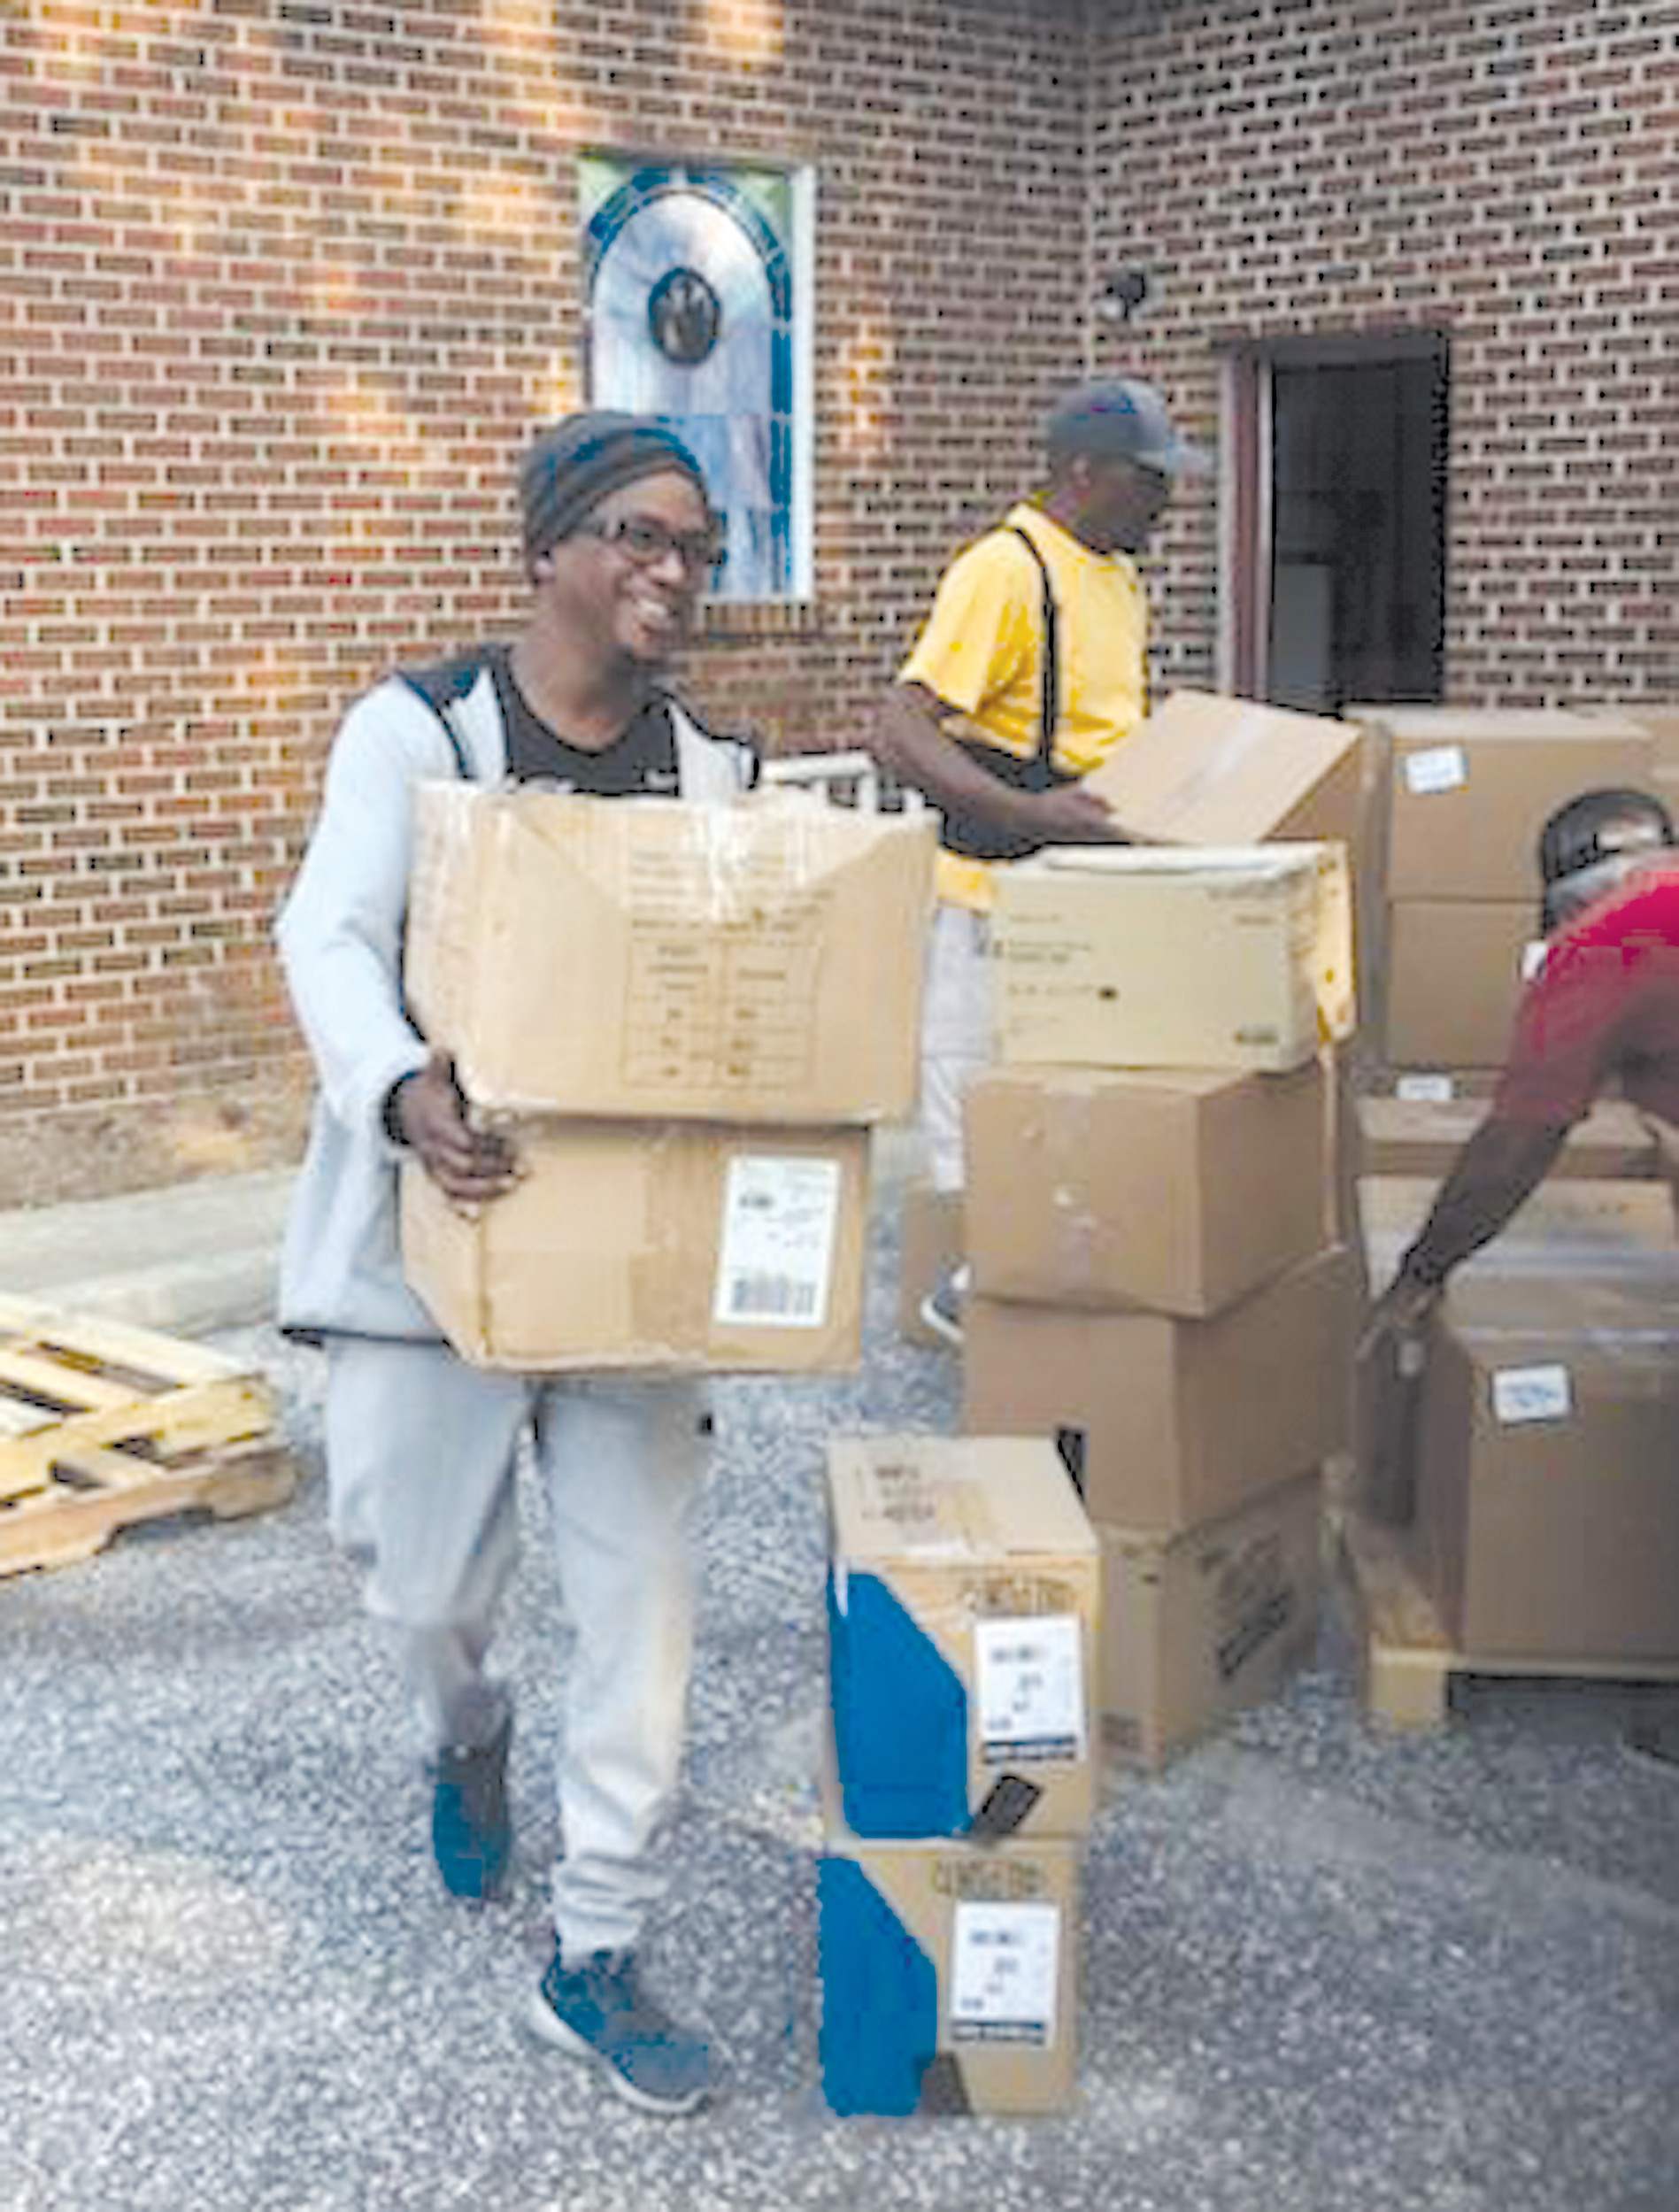 The Rev. Clifton Witherspoon, pastor of Grant Hill Missionary Baptist Church in Rembert, carries boxes of supplies recently during the church's relief effort for victims of of Hurricane Harvey.